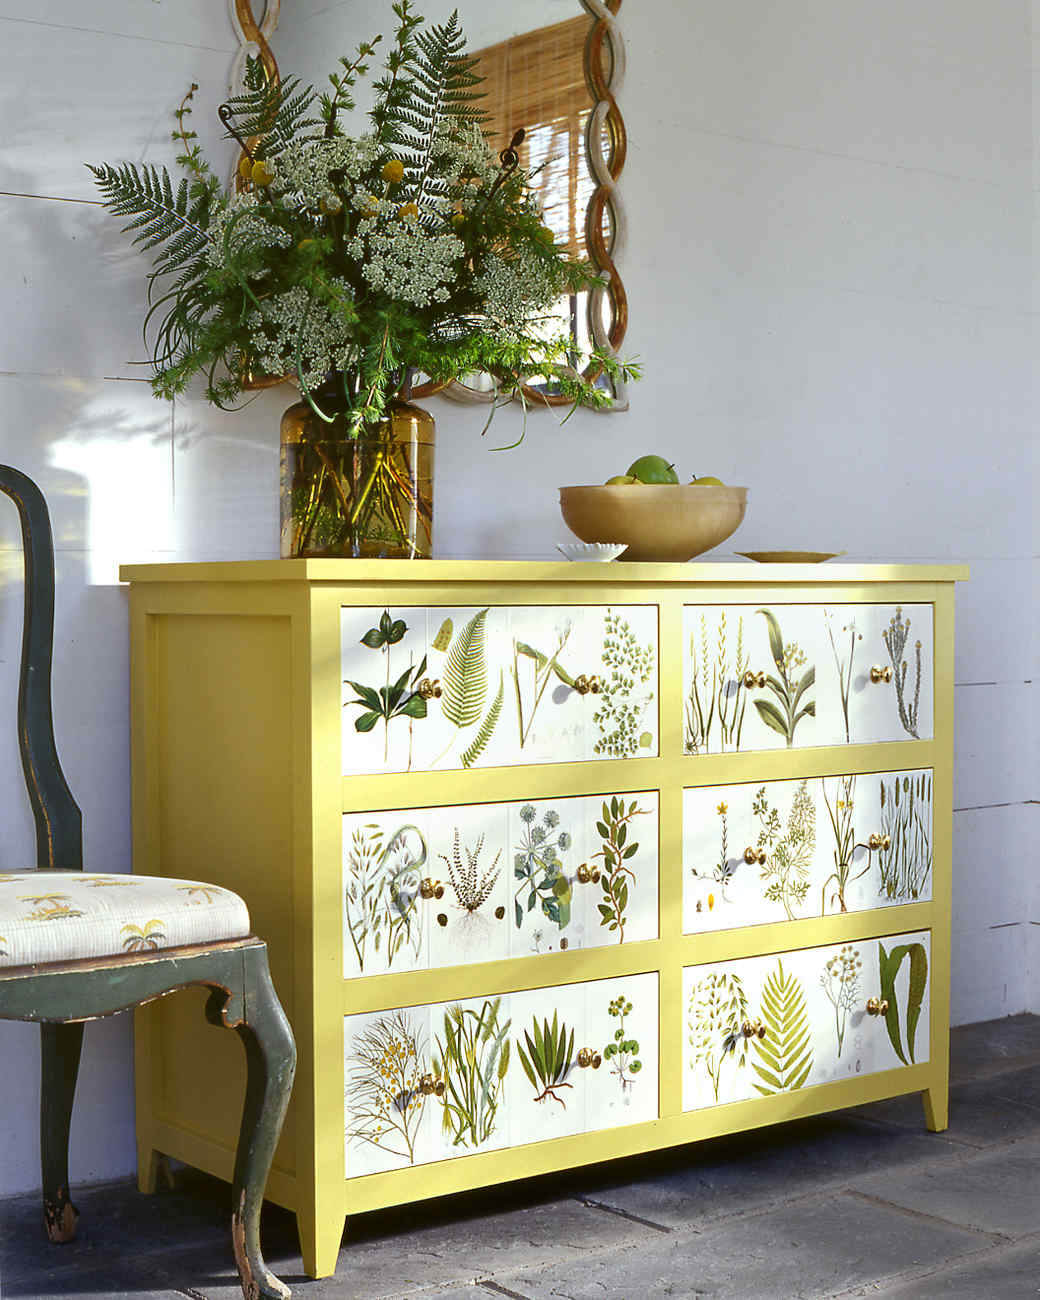 bedroom furniture makeover. Makeover Furniture. Decoupage Dresser Furniture E Bedroom